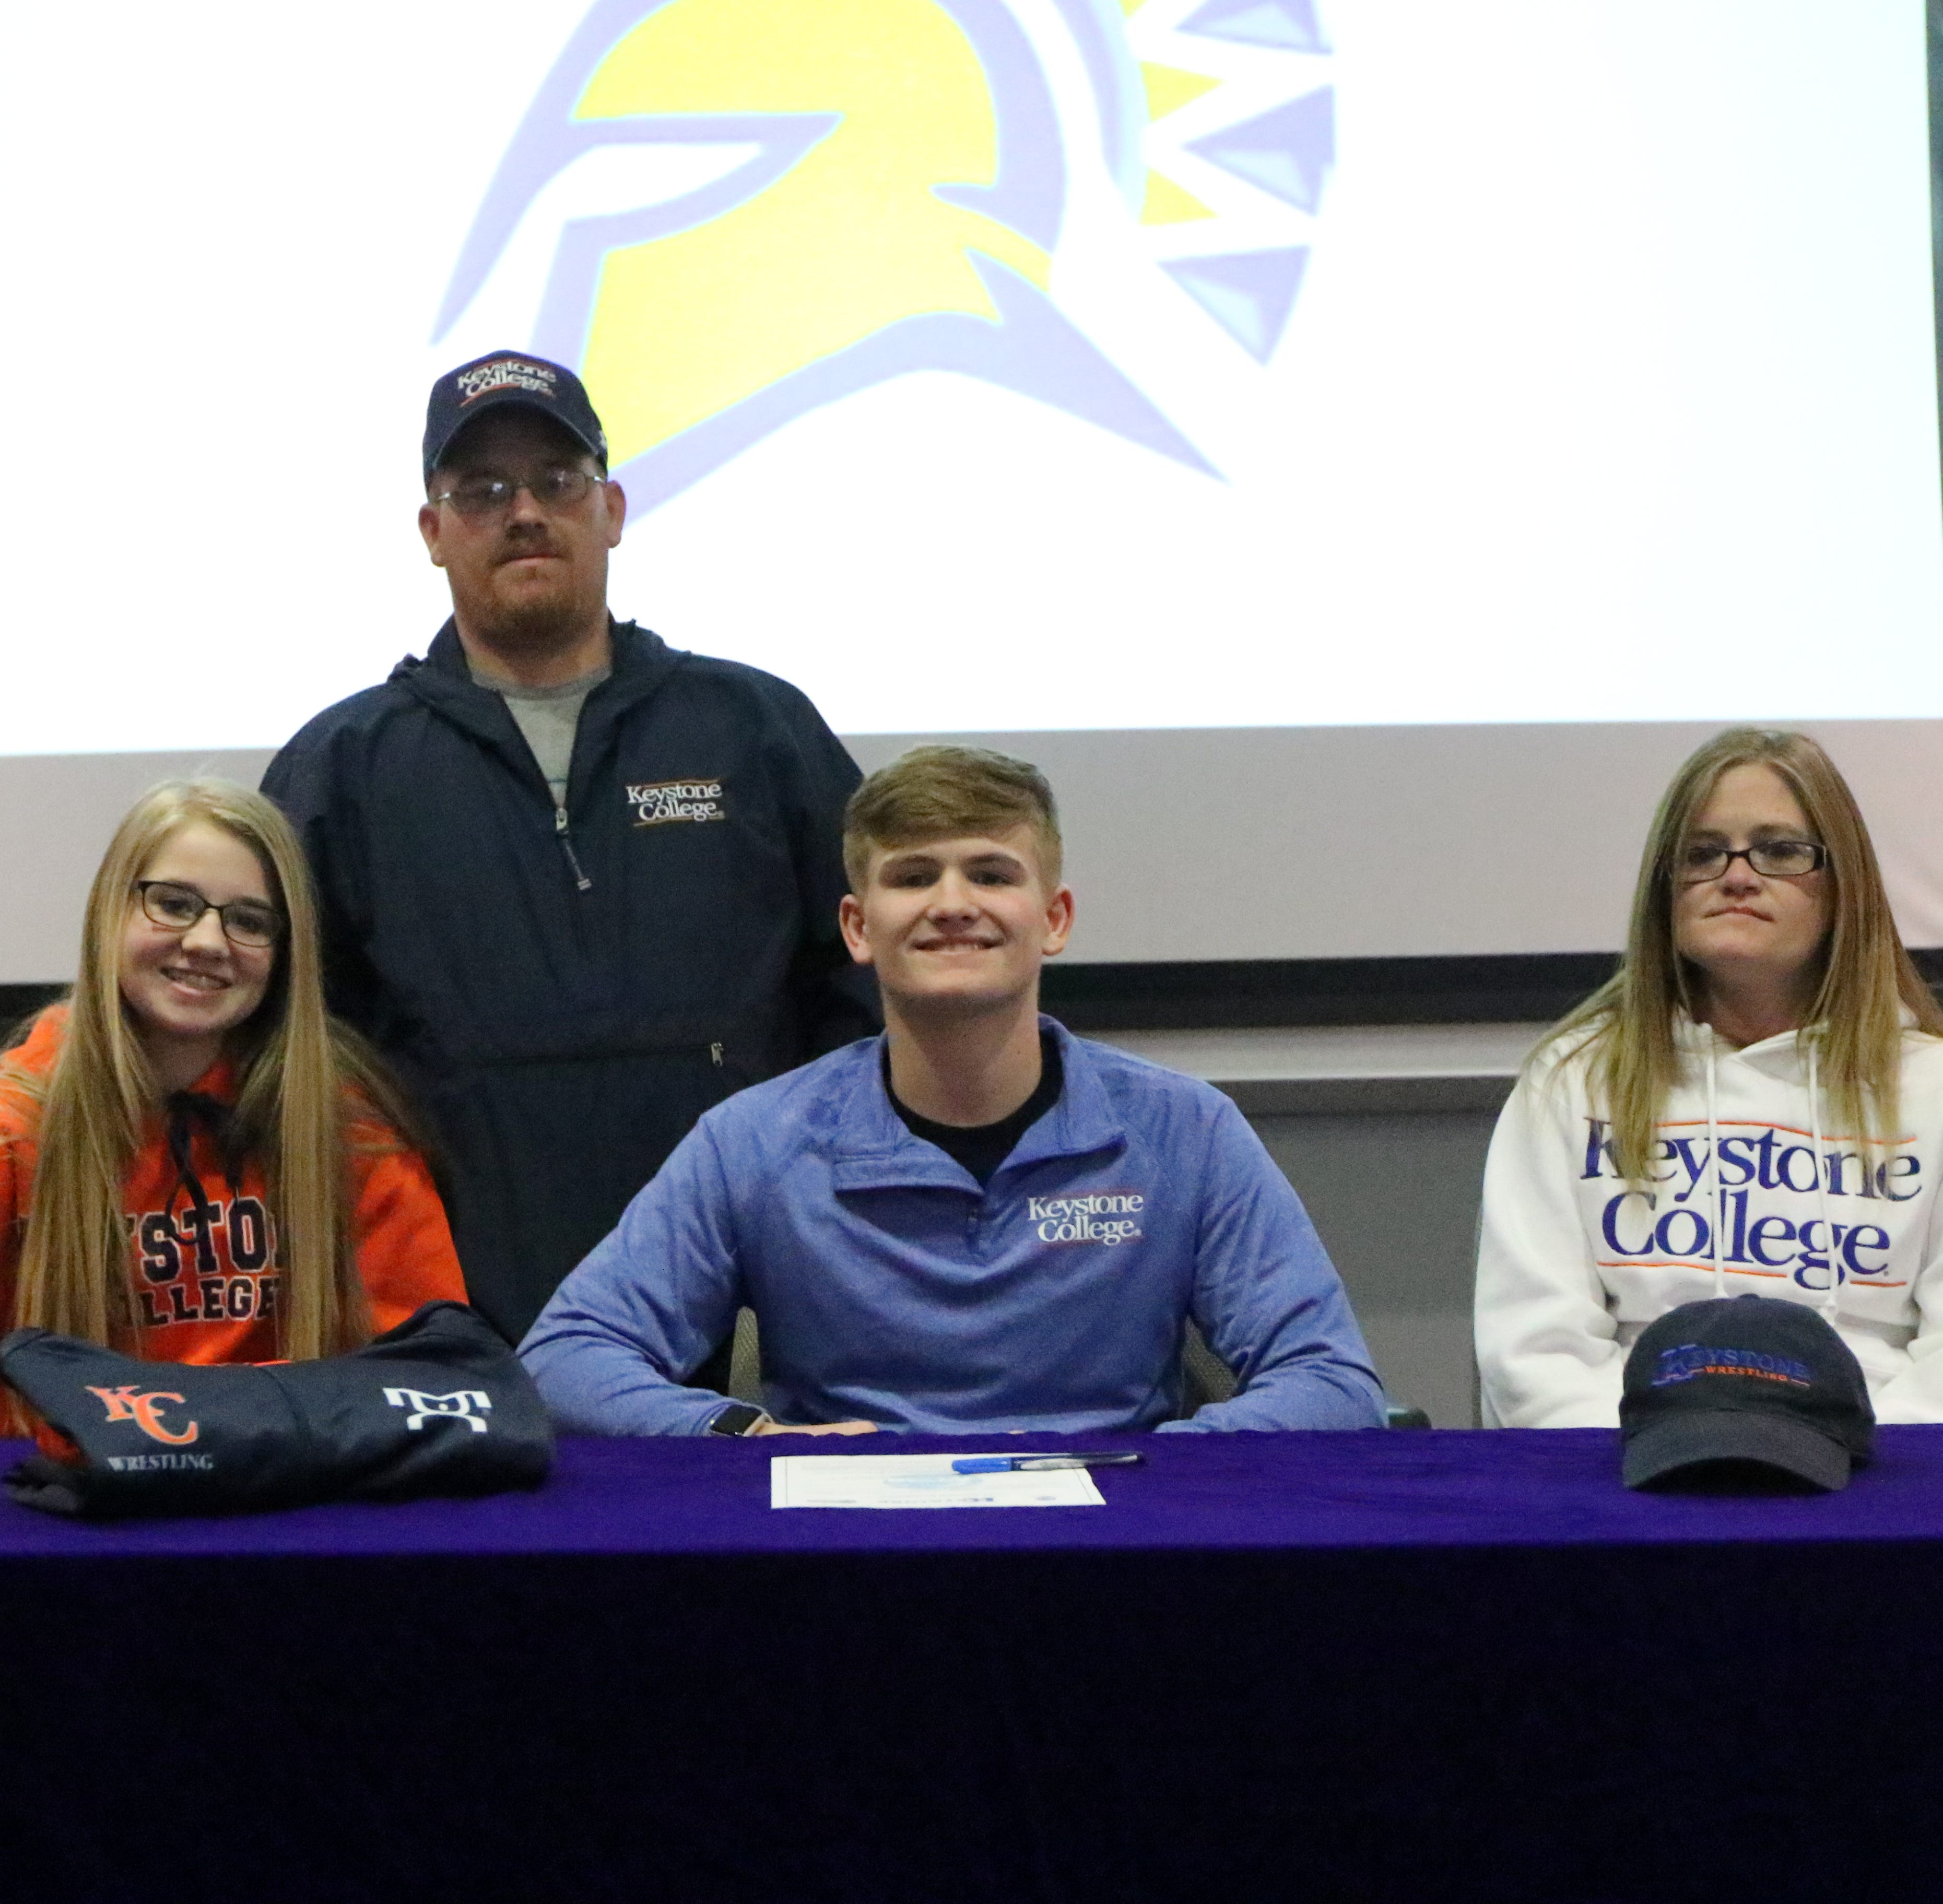 College signings: Thomas Edison's Lewis headed to Keystone; Corning trio make choices